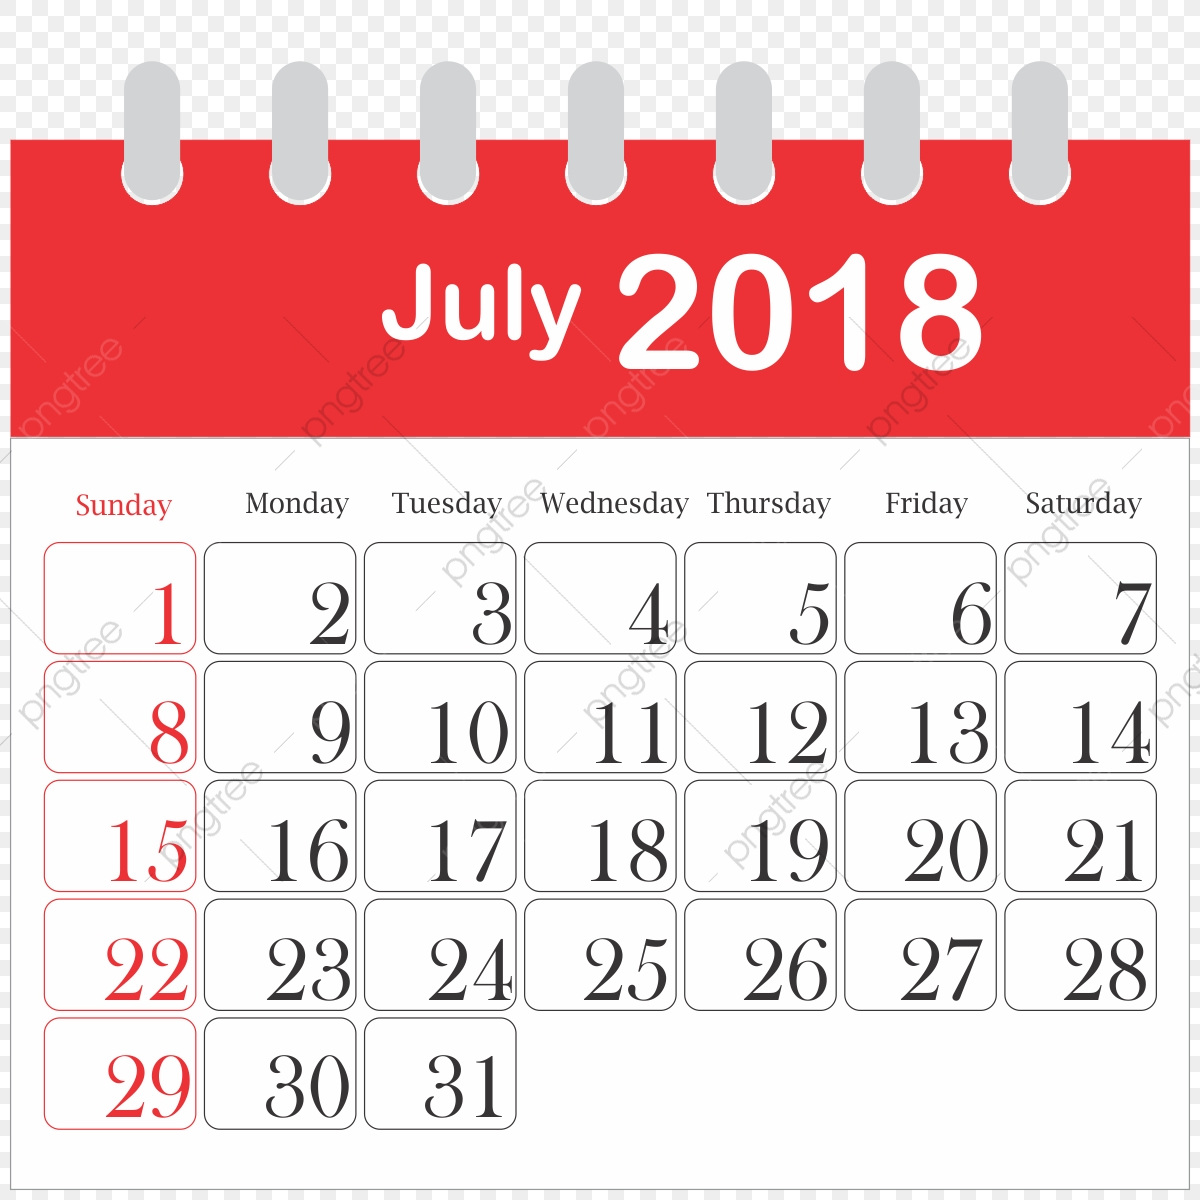 July clipart july 2018. Month calendar icon daily